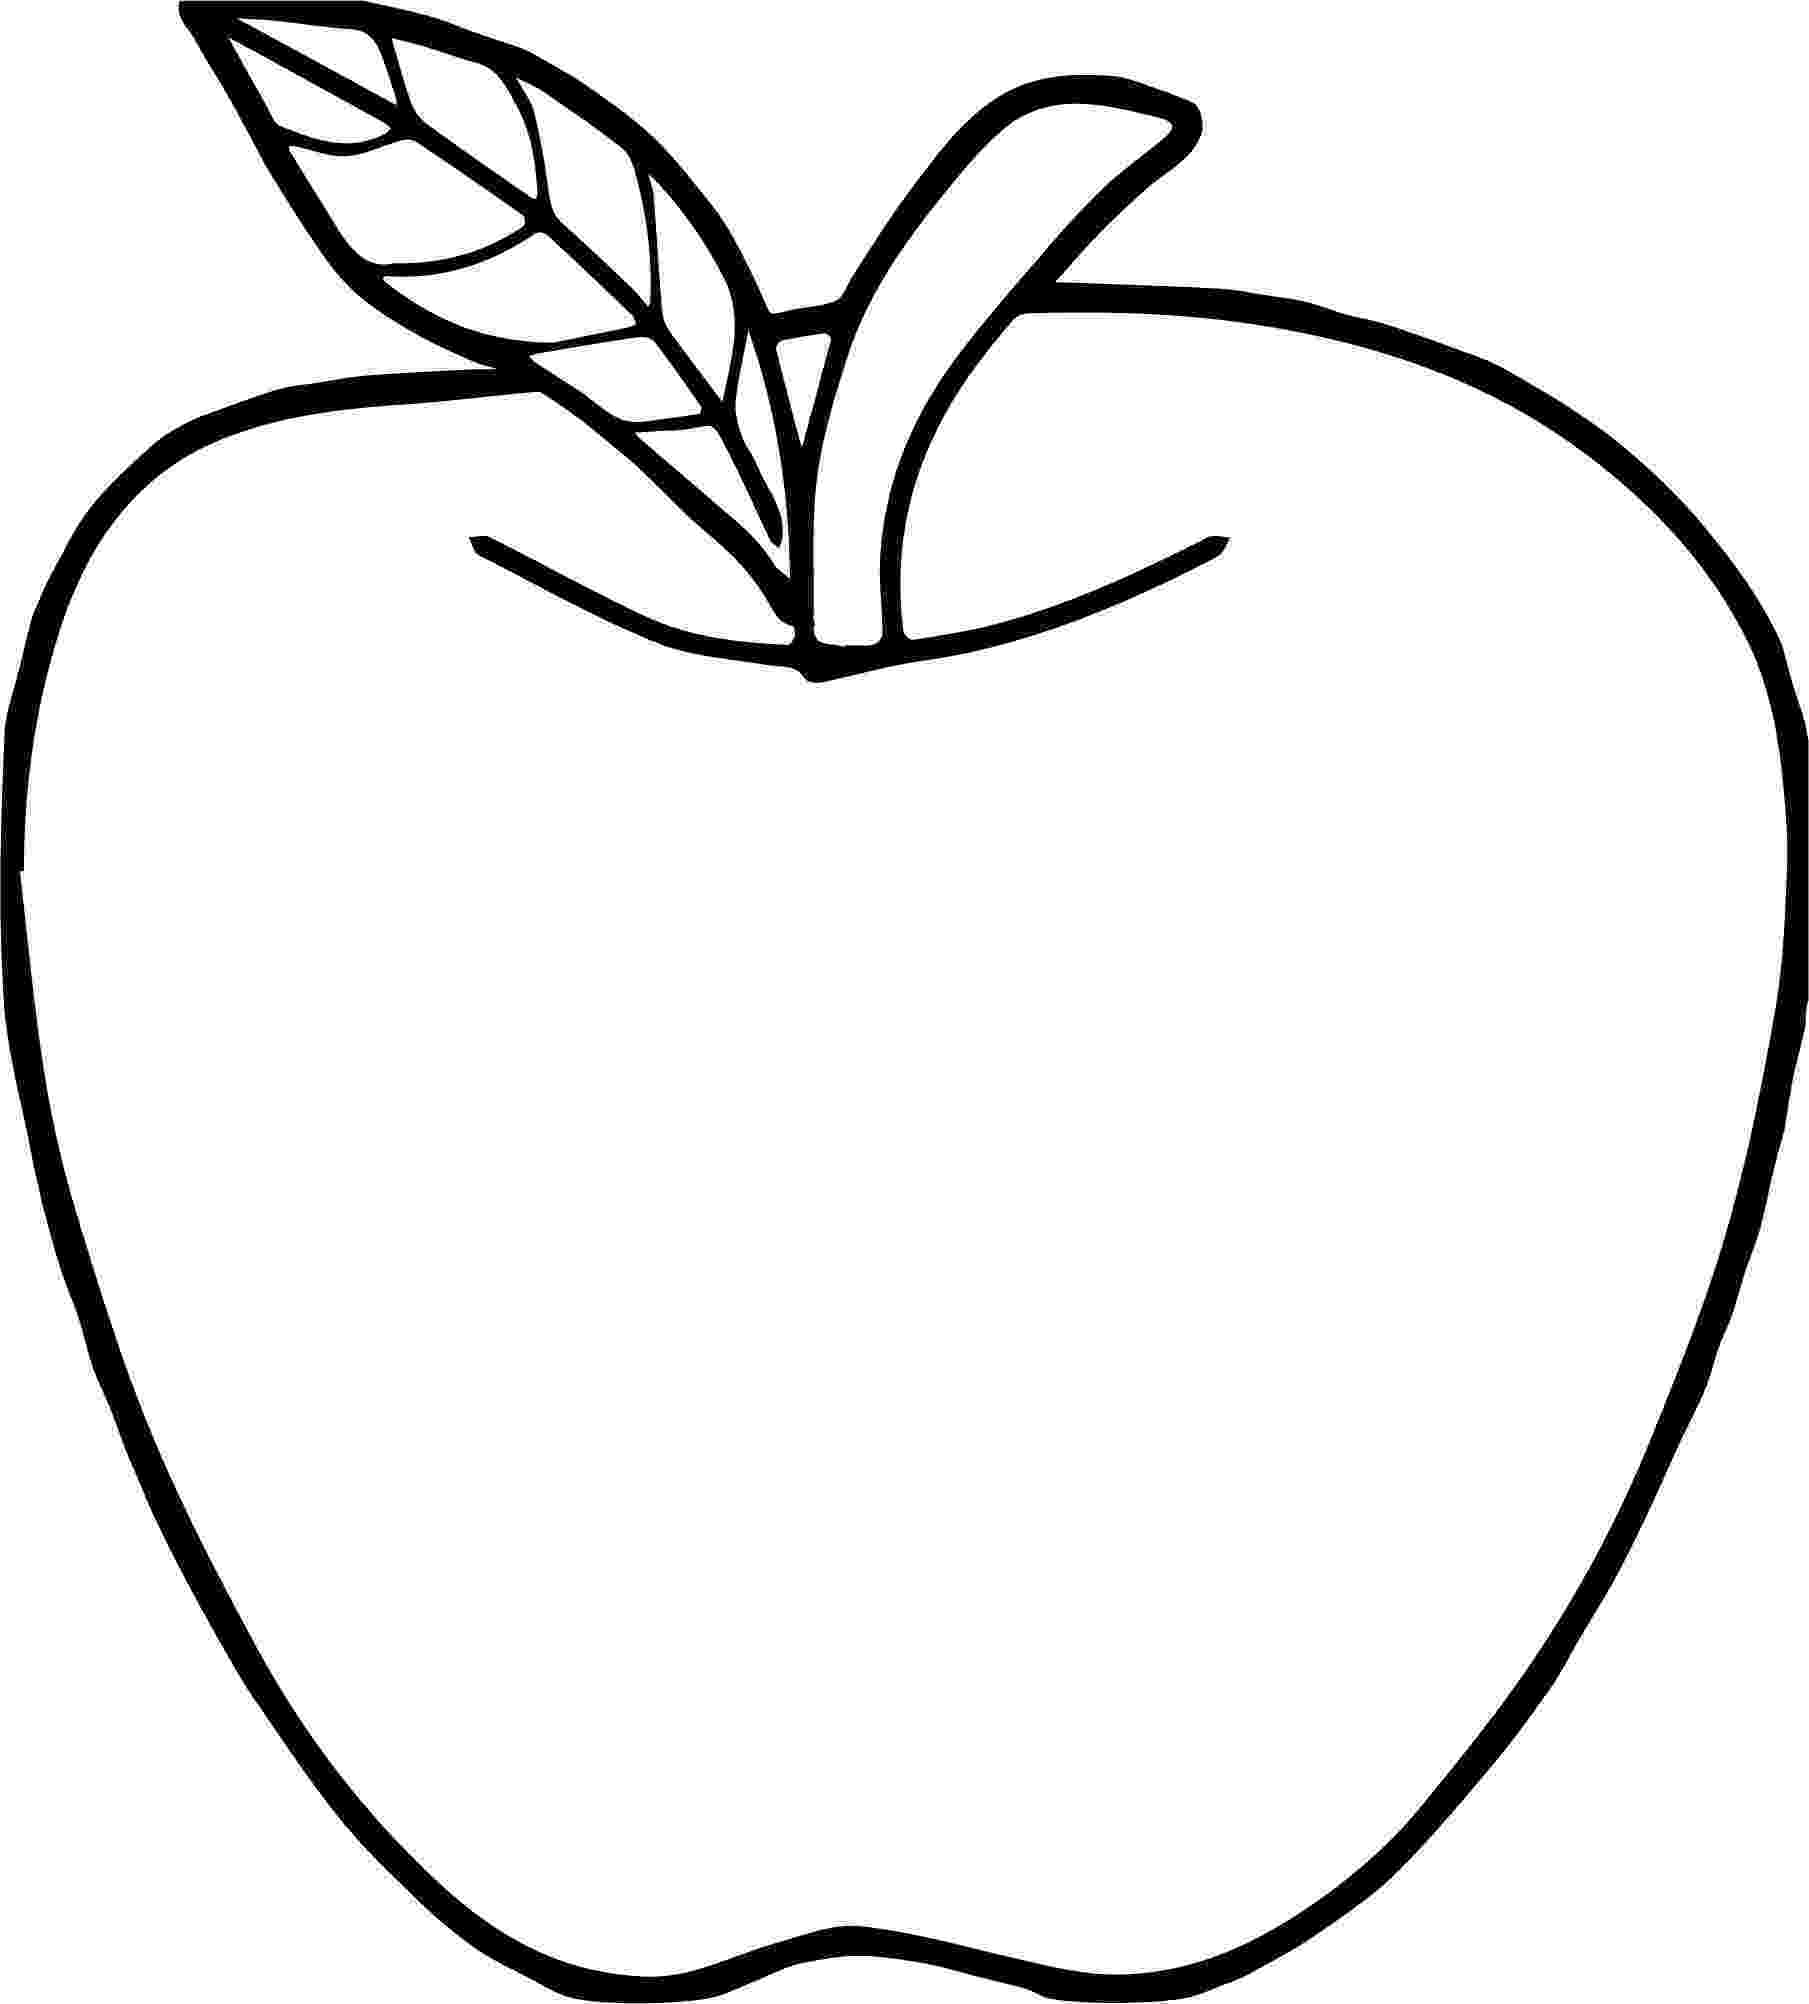 apple for coloring apple coloring page free printable coloring pages apple for coloring